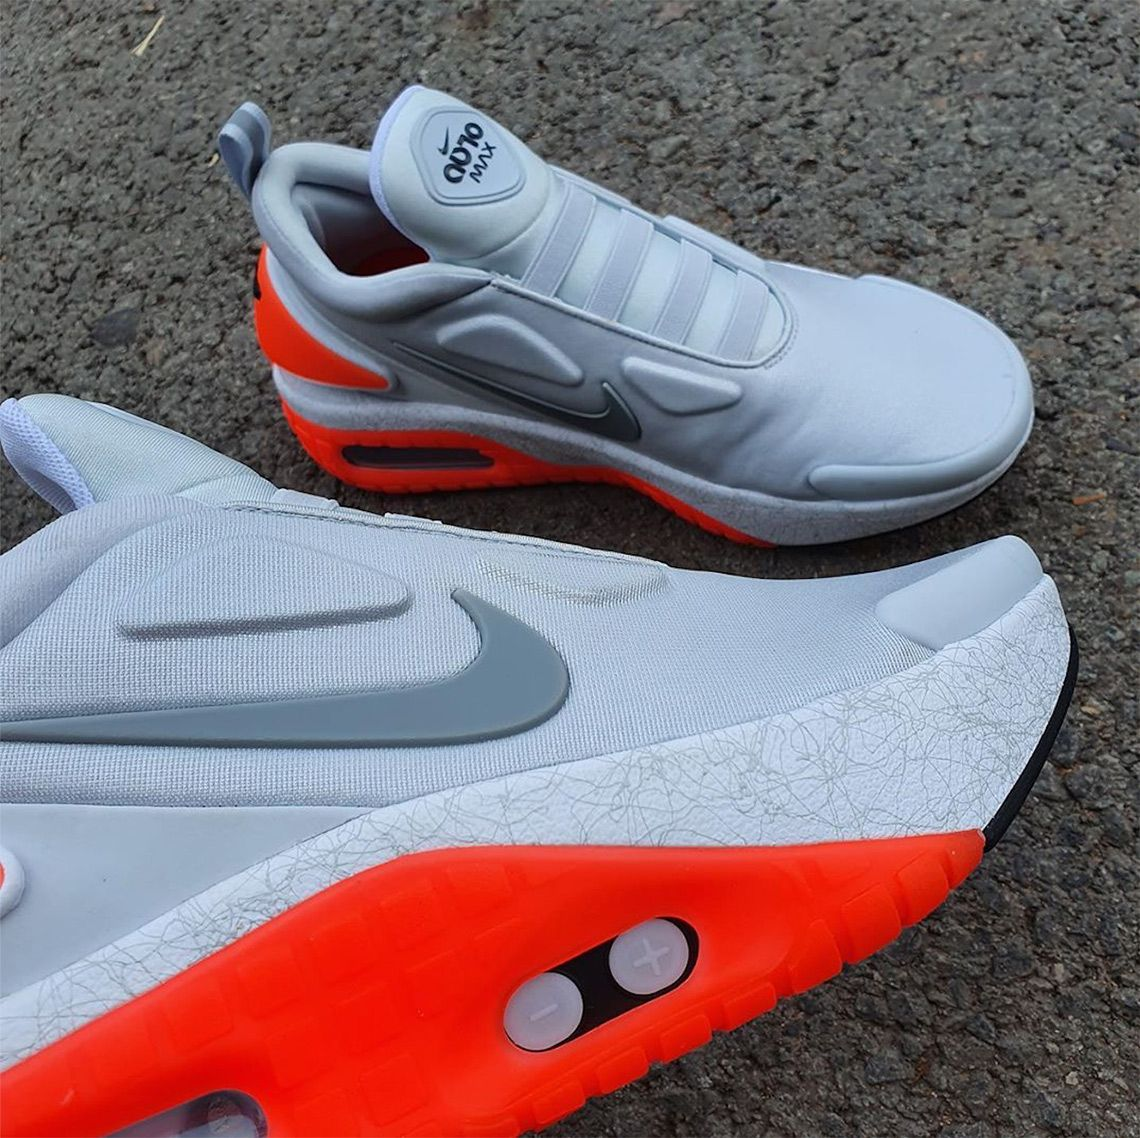 Nike Adapt Auto Max 01 Cz0232 002 Release Info Sneakernews Com In 2020 Nike Lacing Sneakers Sneakers Fashion